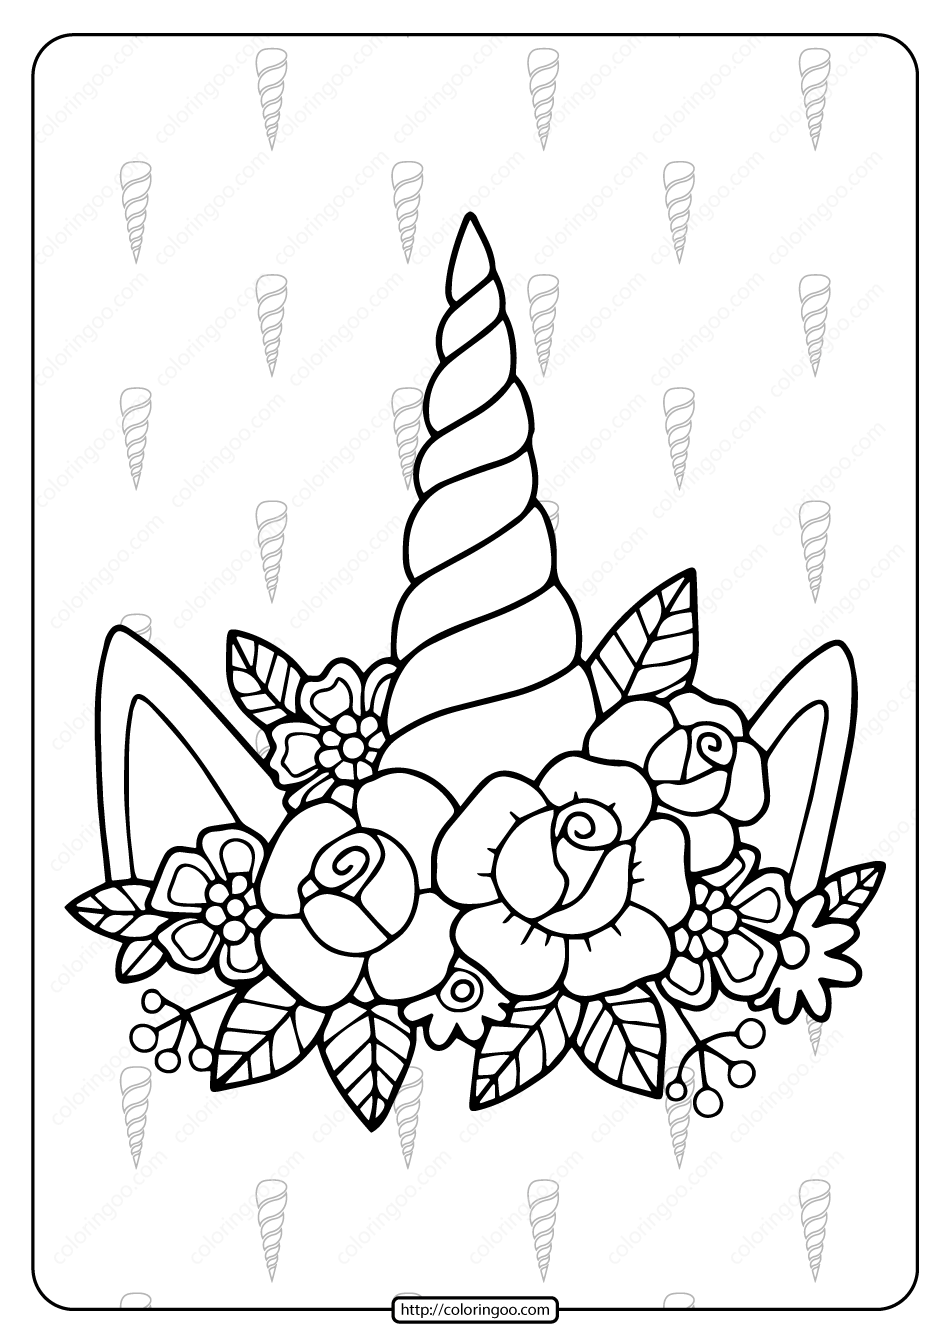 Printable Unicorn Horn and Flowers Coloring Page